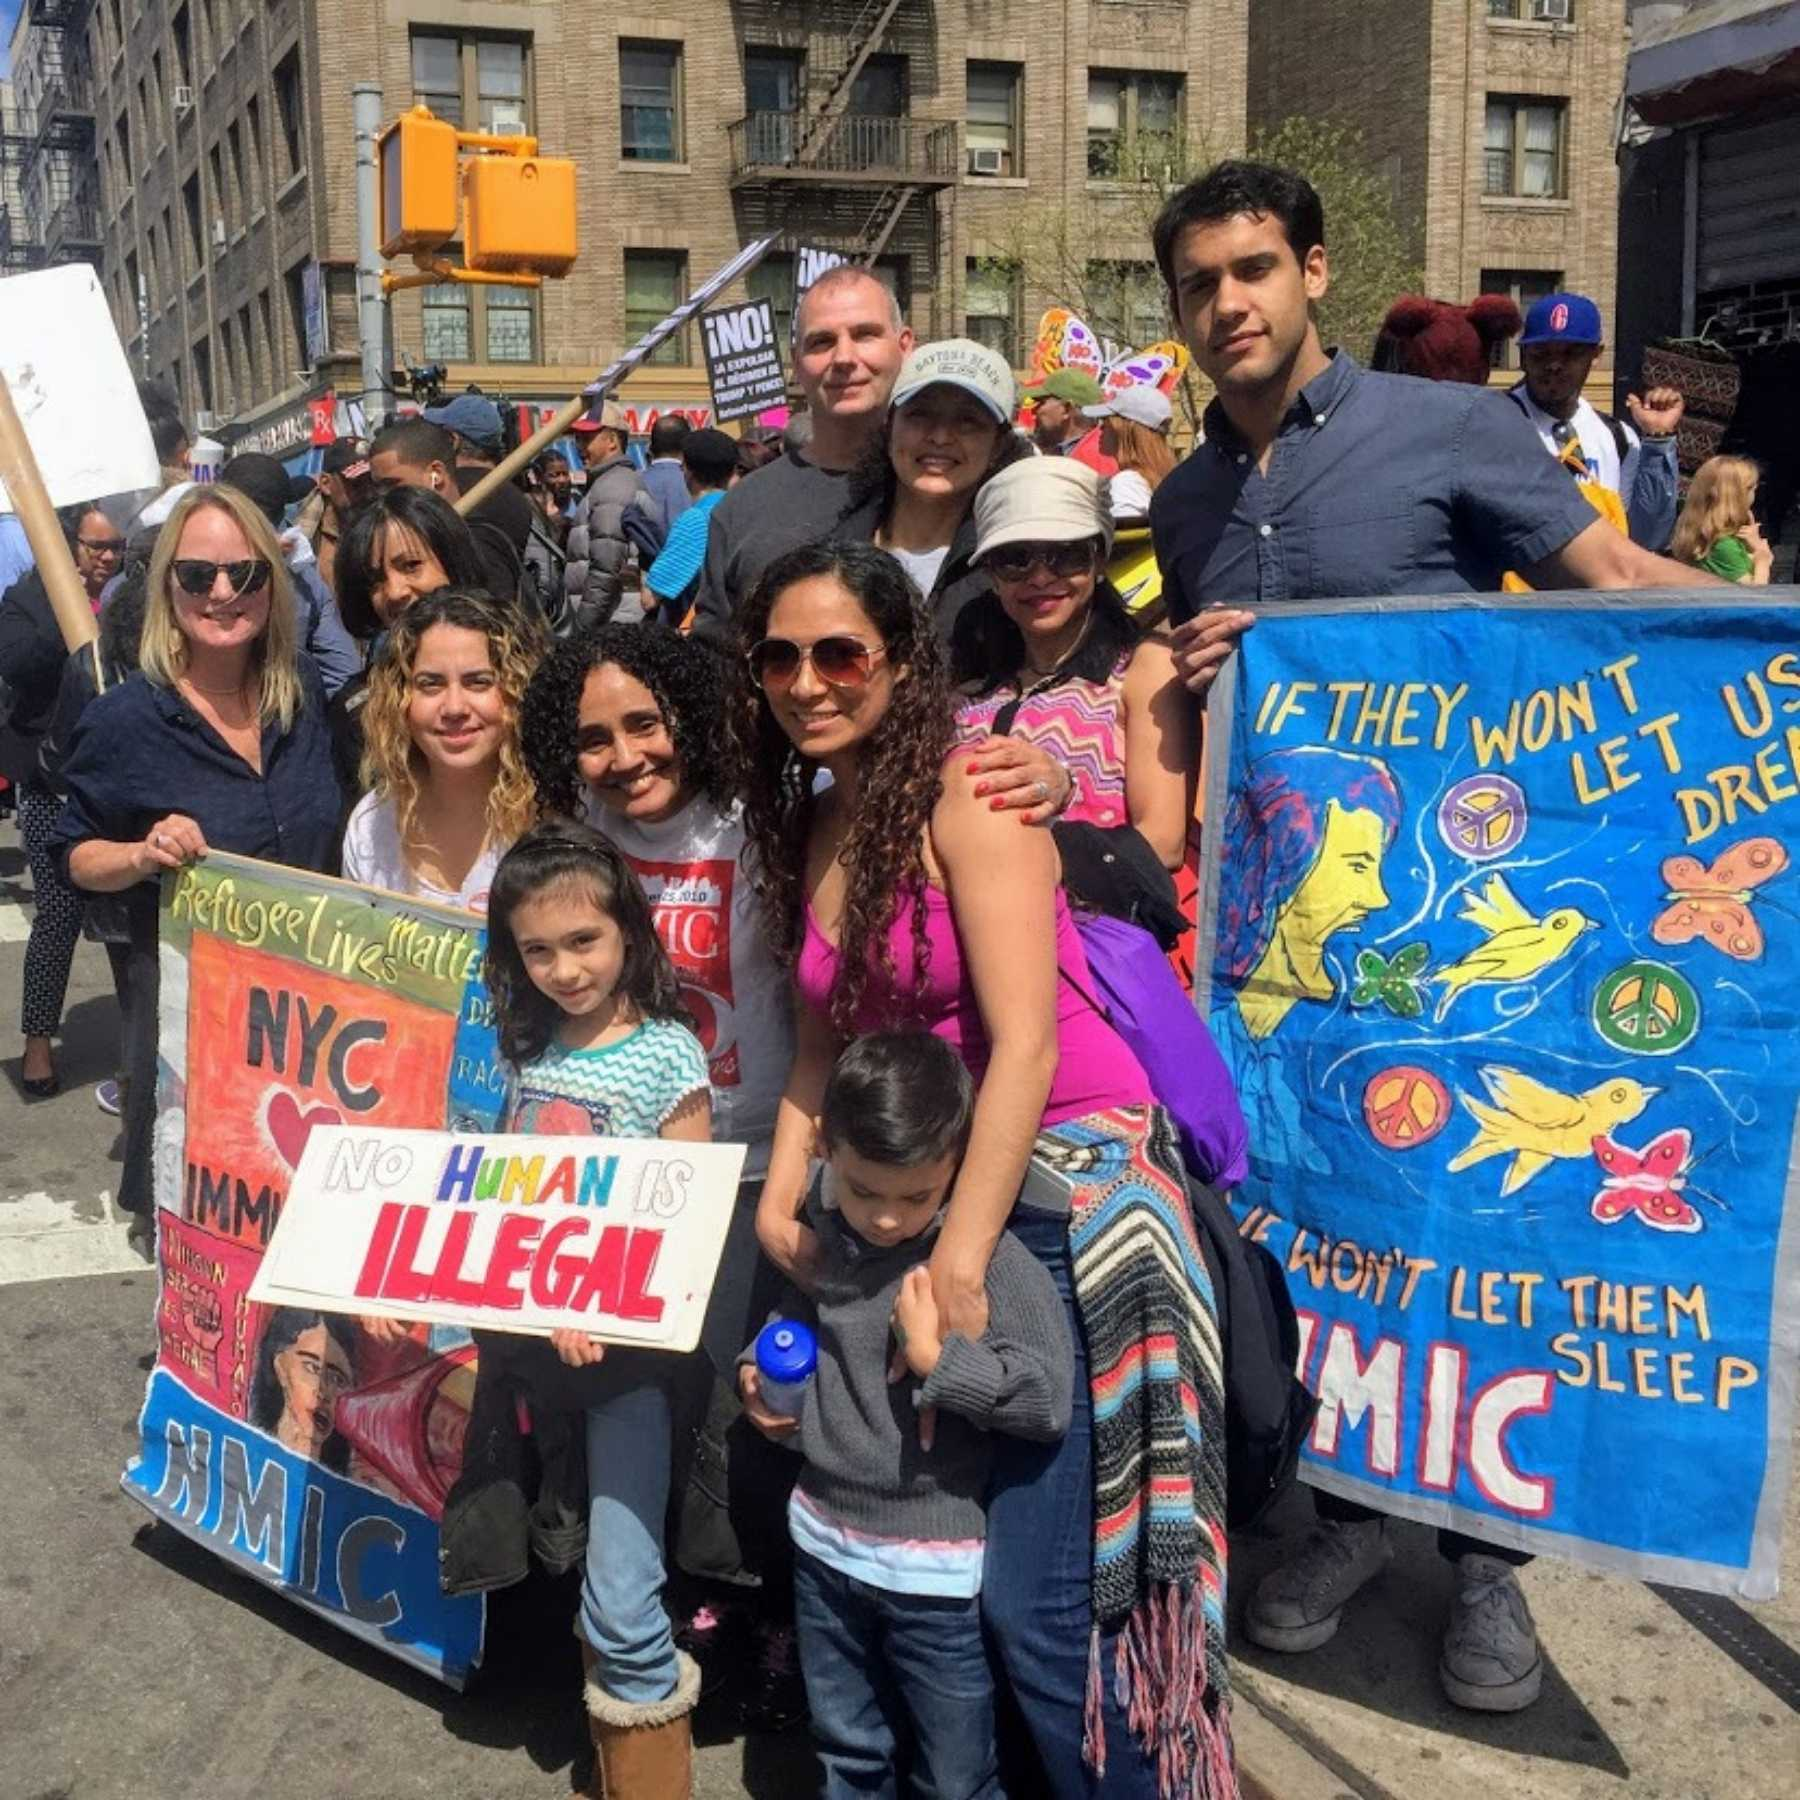 """Members of the NMIC team and community at an immigration protest. A man holds a sign that reads """"if they won't let us dream, we don't let them sleep NMIC"""", a child holds a sign that reads """"No Human is illegal"""", two women hold a sign that reads """"Refugee lives matter, NYC hearts Immigrants"""""""